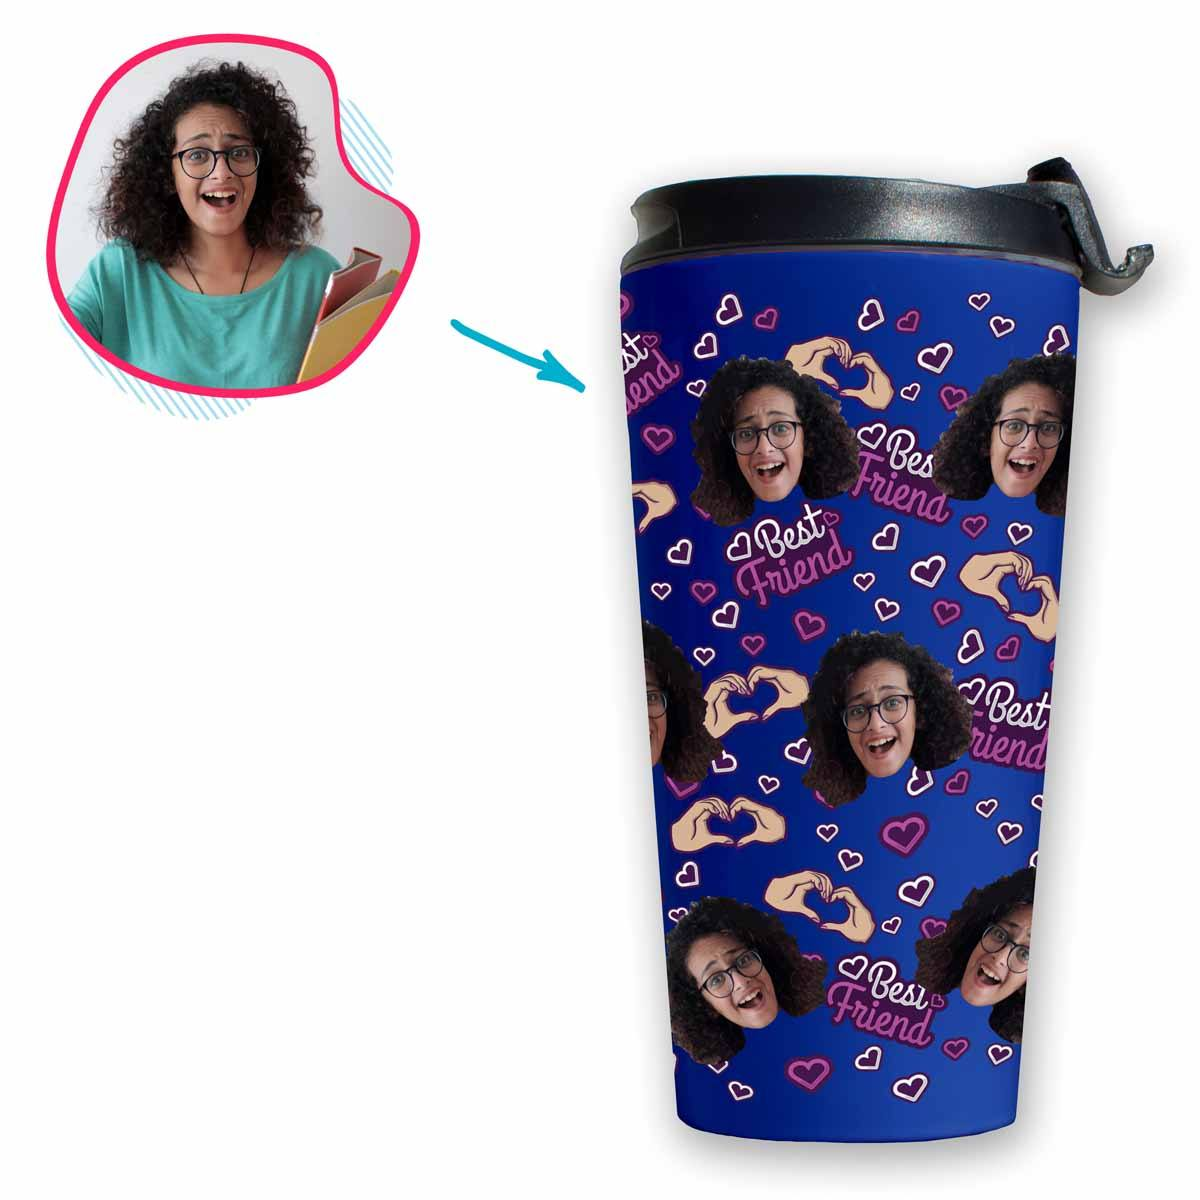 darkblue BFF for Her travel mug personalized with photo of face printed on it